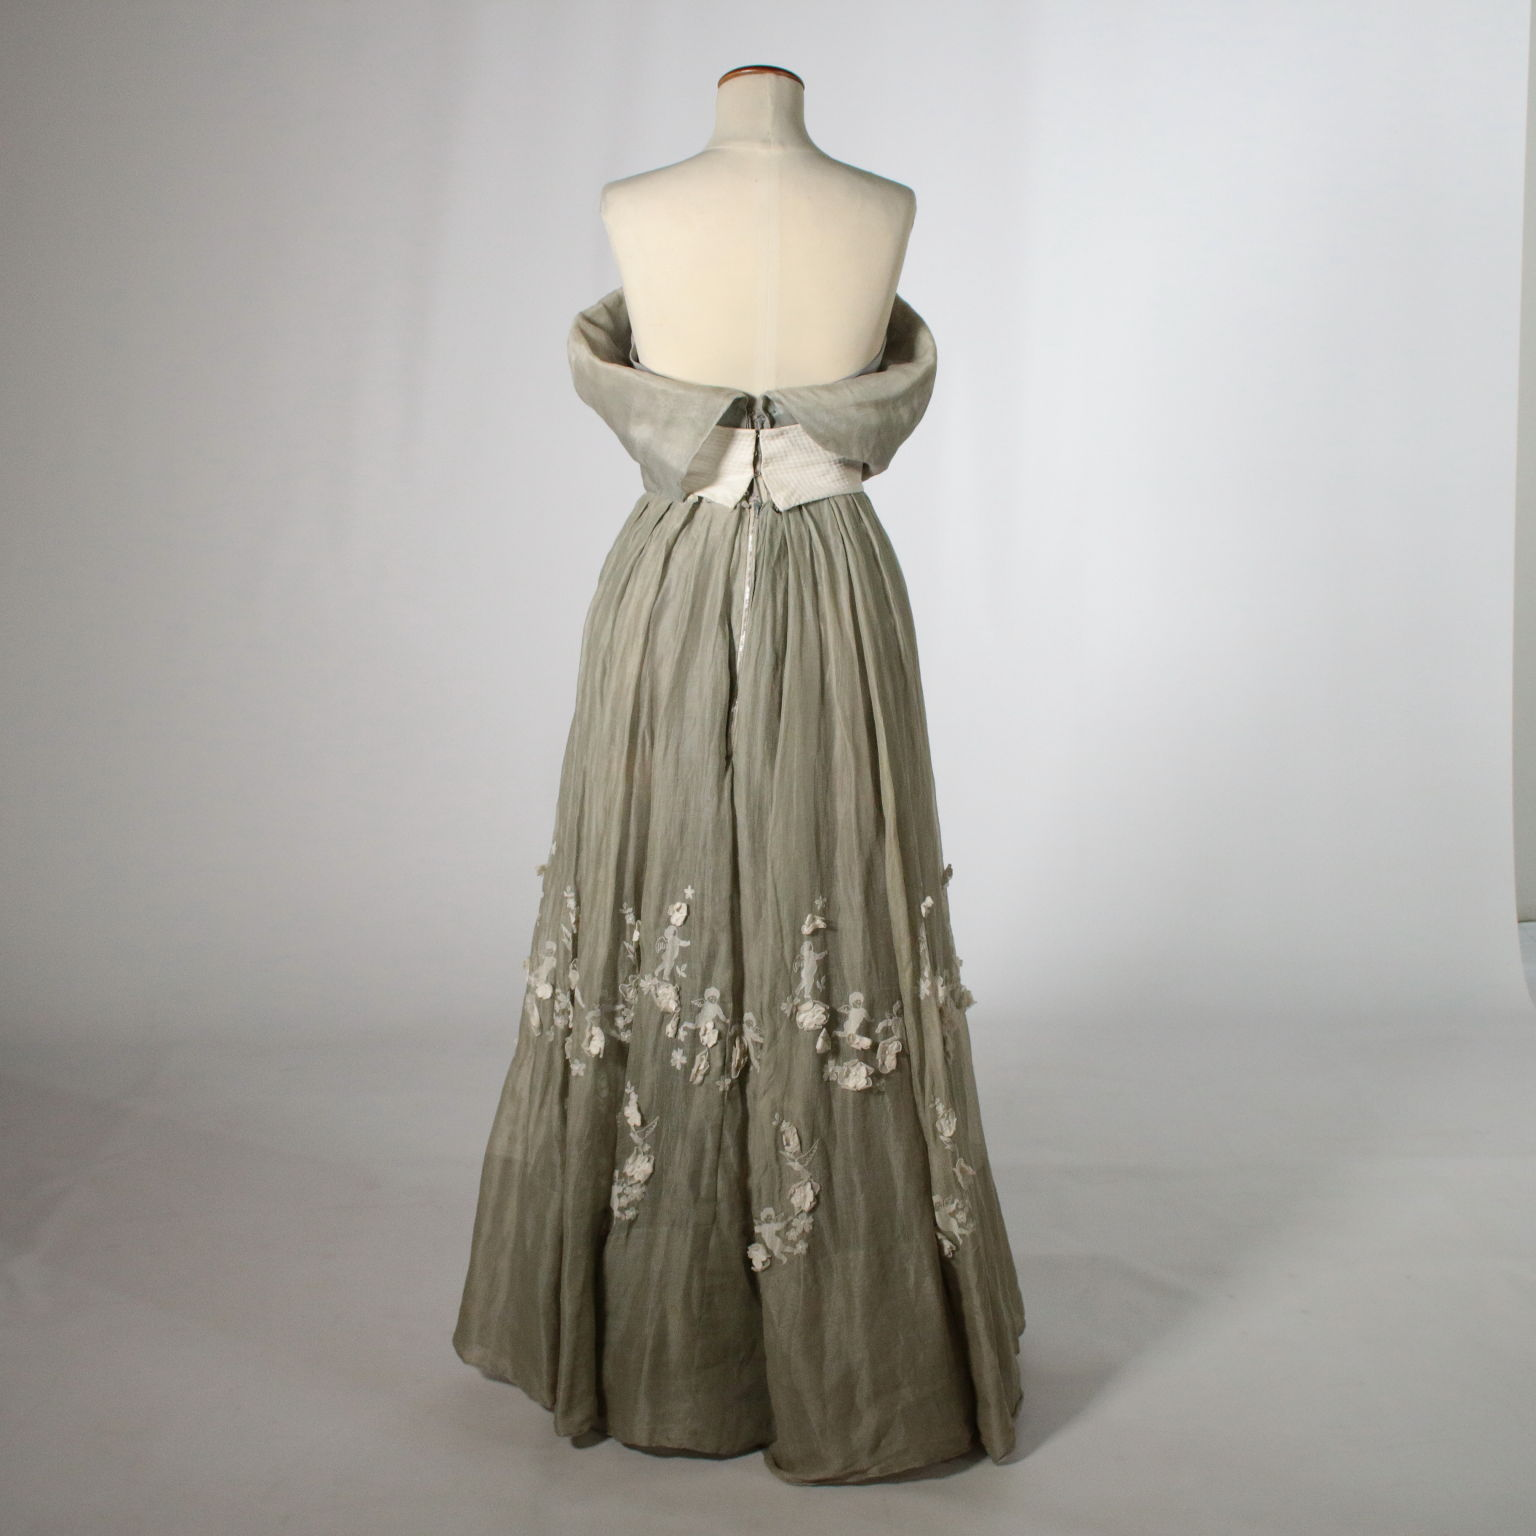 74aadc9b2c3de Vintage Evening Dress with Embroidery Made in Italy 1950s